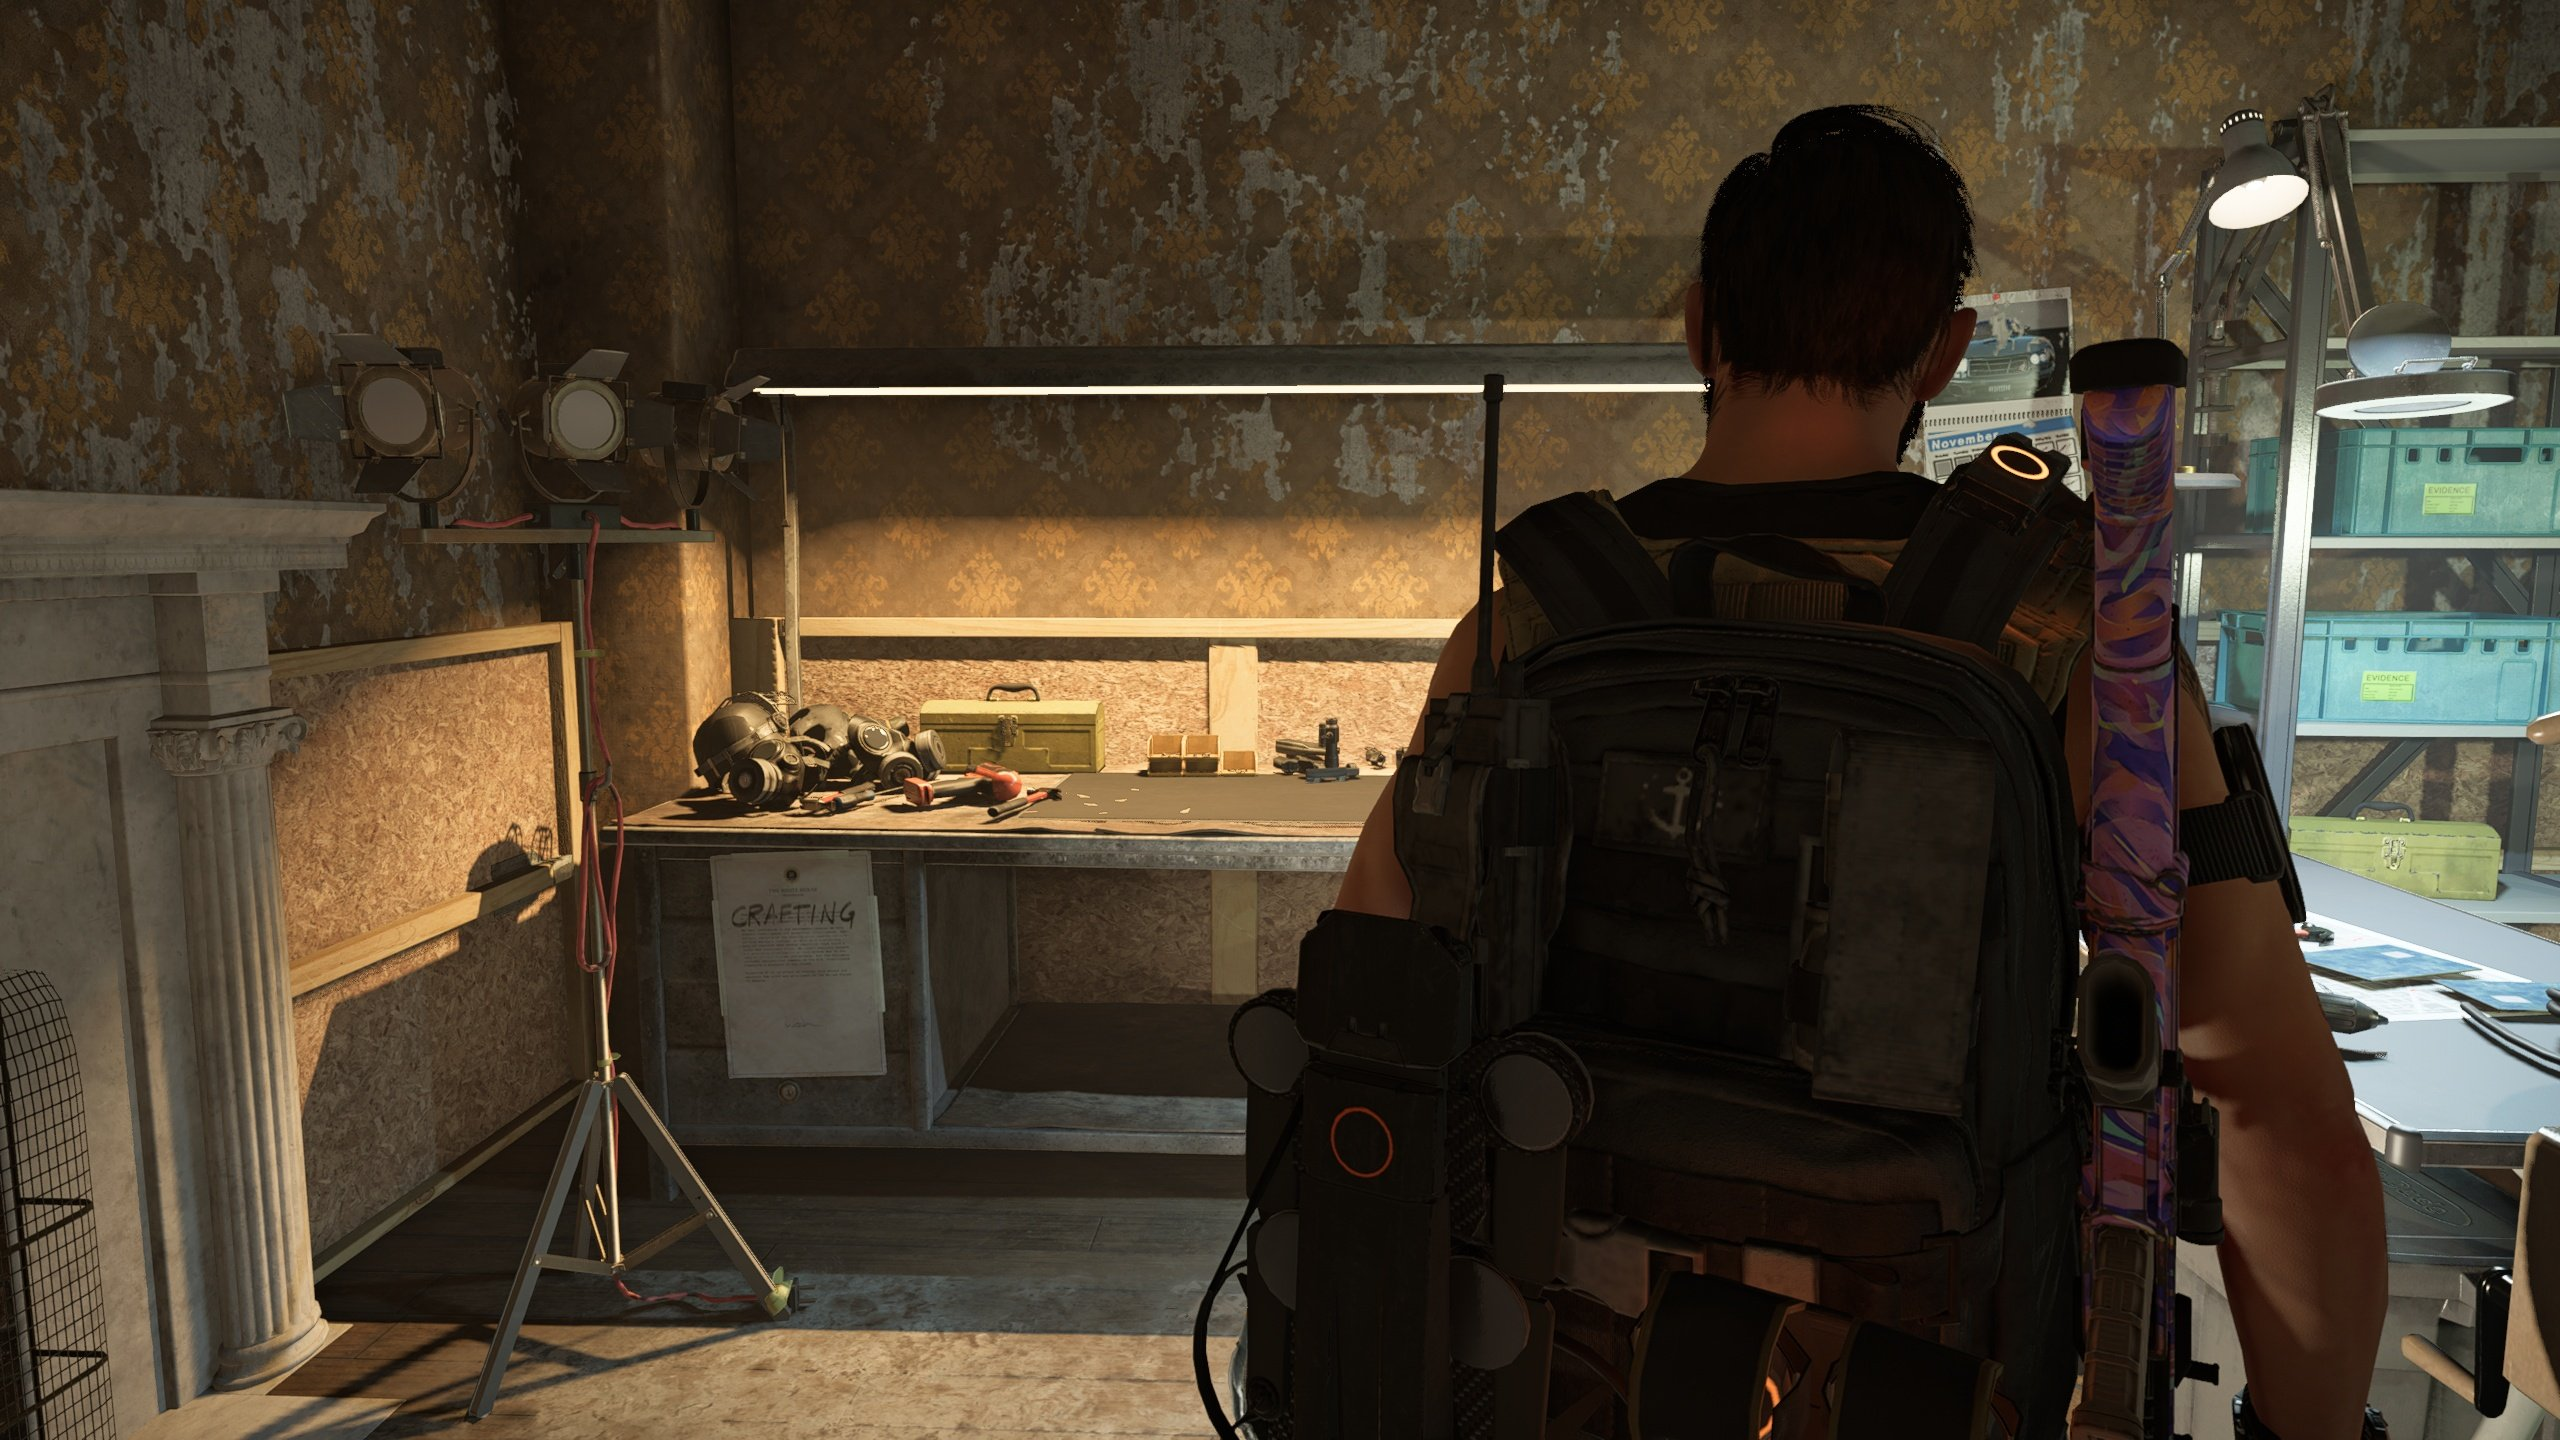 How to craft new items and gear in The Division 2 | Shacknews